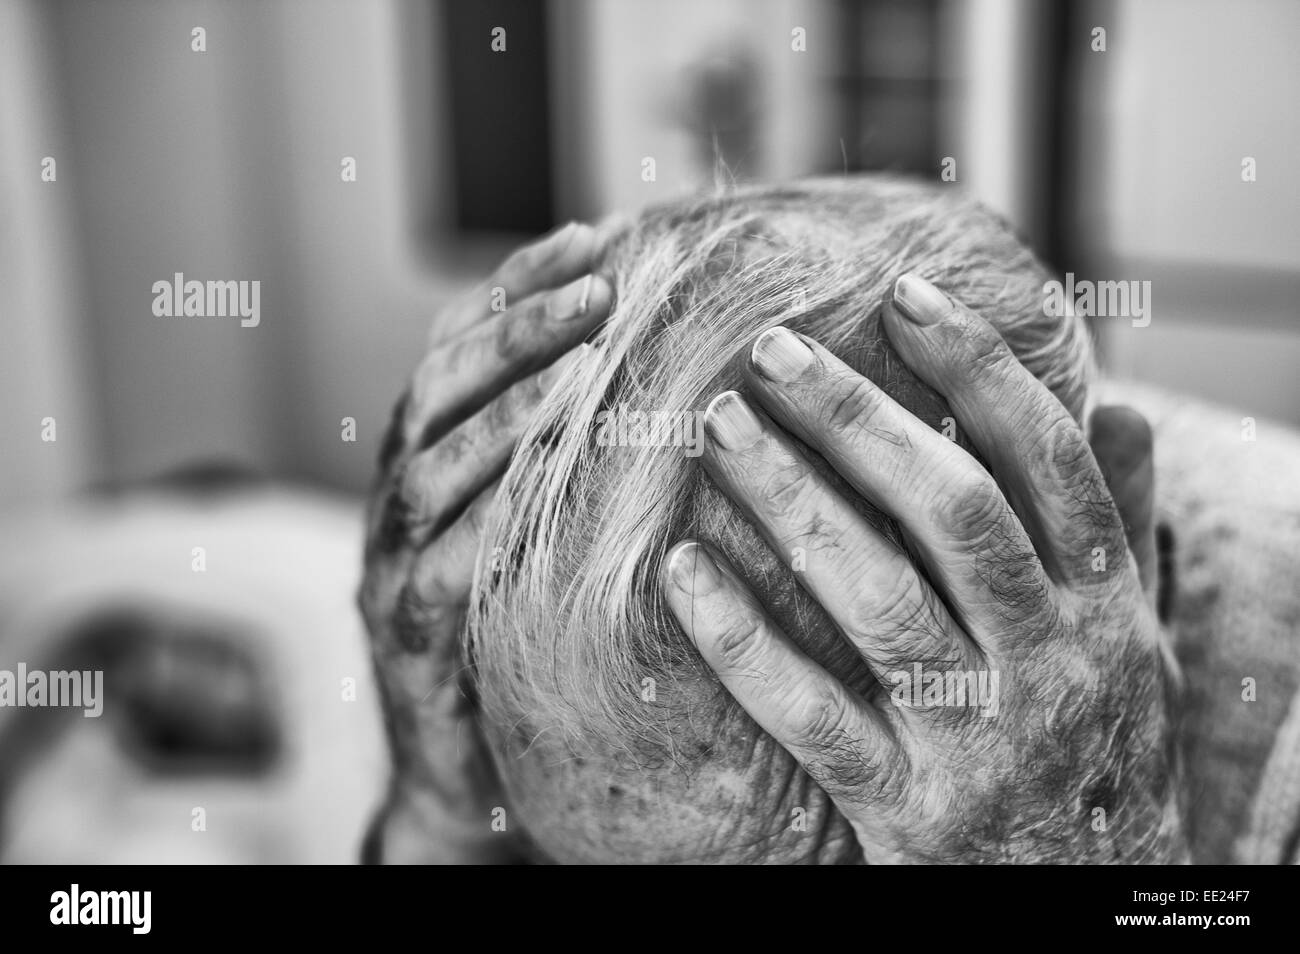 Holding ones head deep in though worrying and contemplating the sadness and happiness of previous times memories - Stock Image